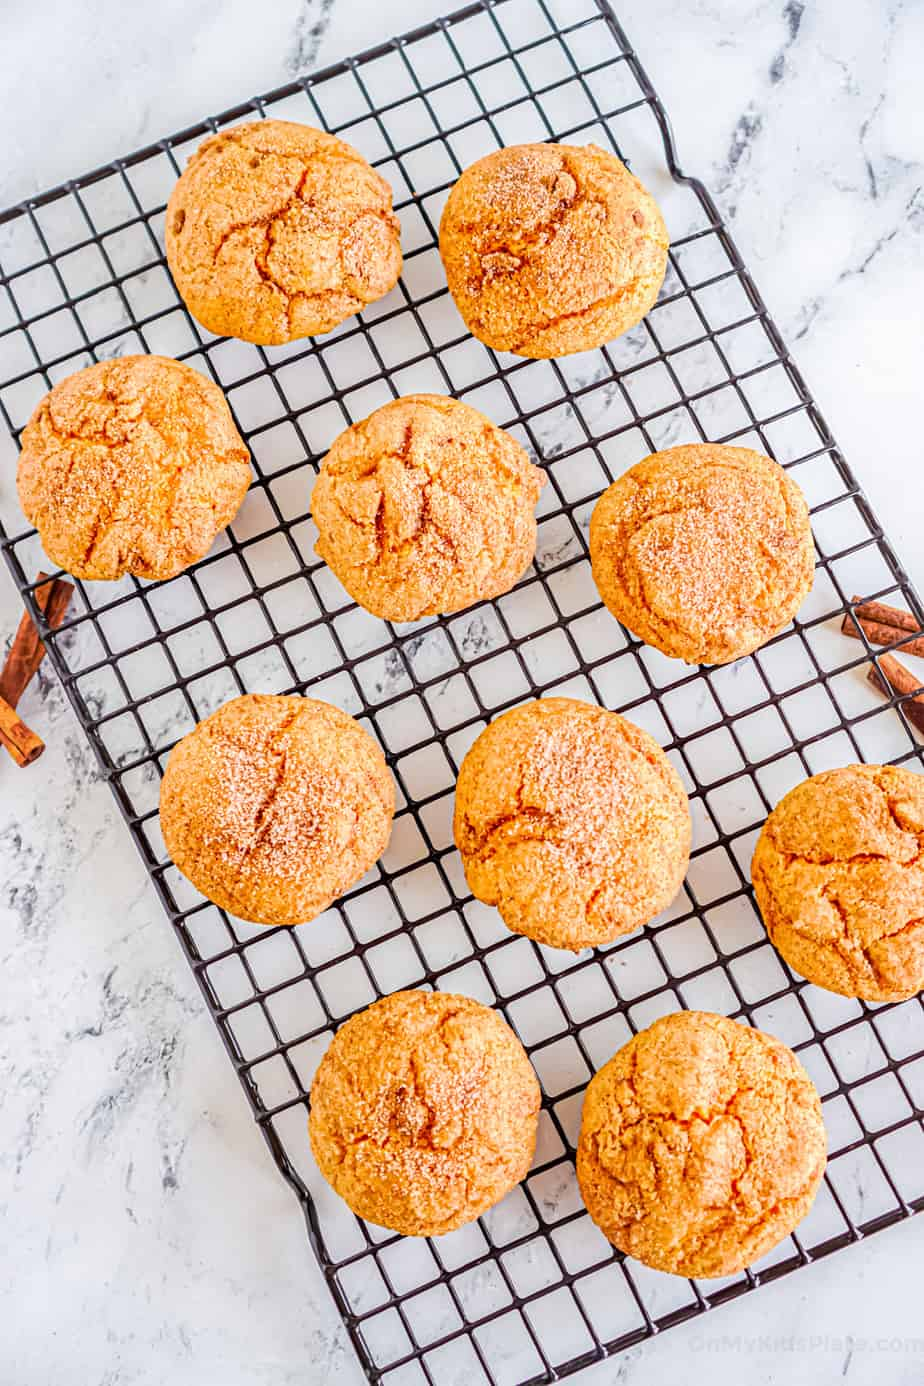 Pumpkin snickerdoodle cookies cooling on a wire rack